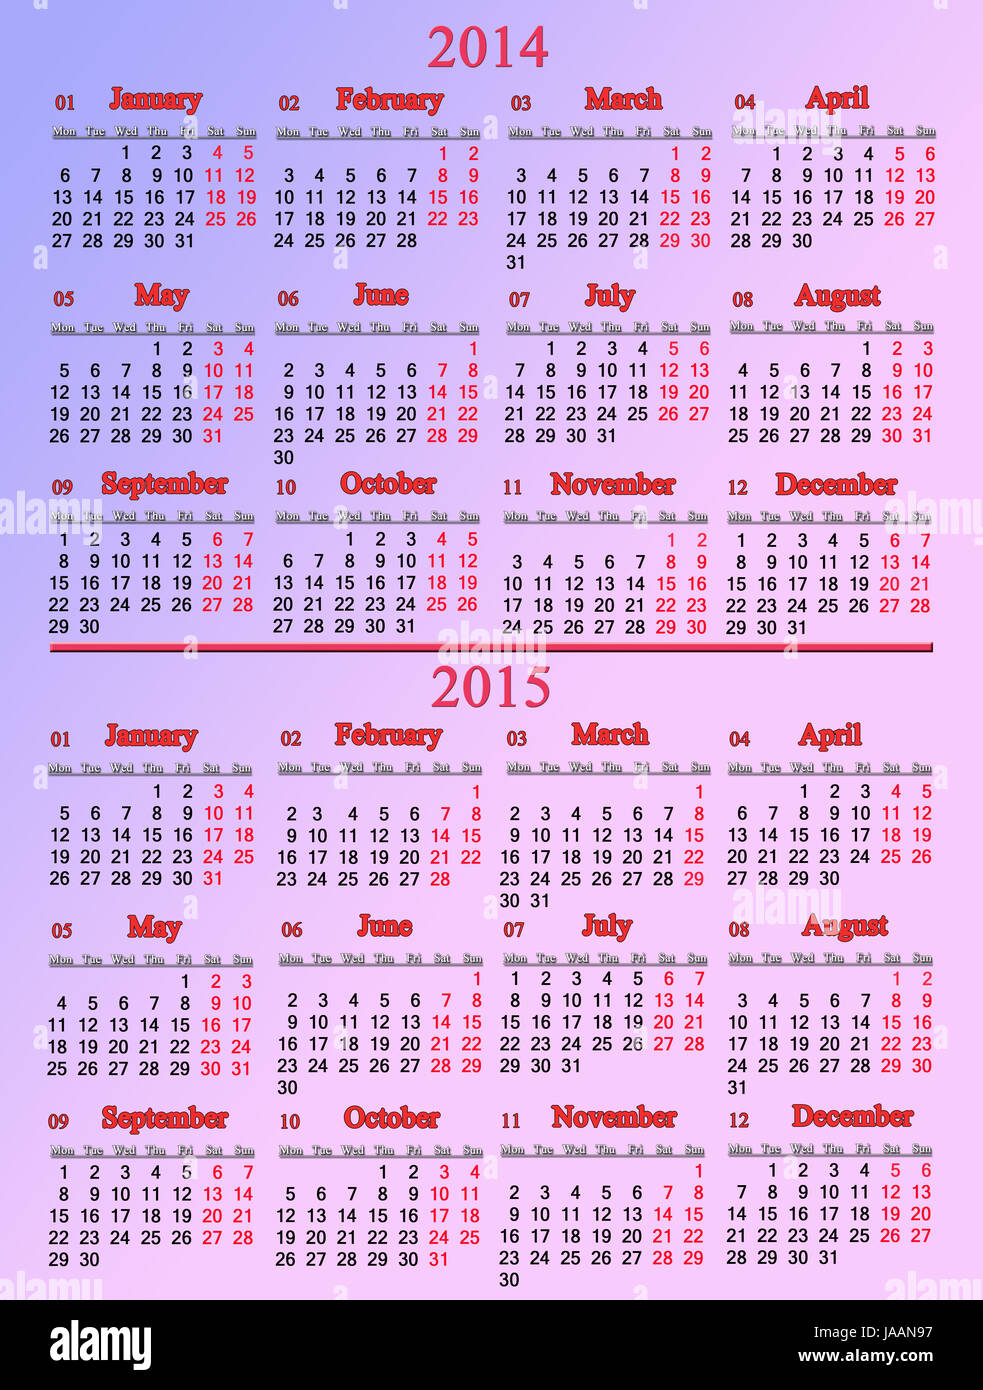 usual office pale rose calendar for 2014 - 2015 years - Stock Image